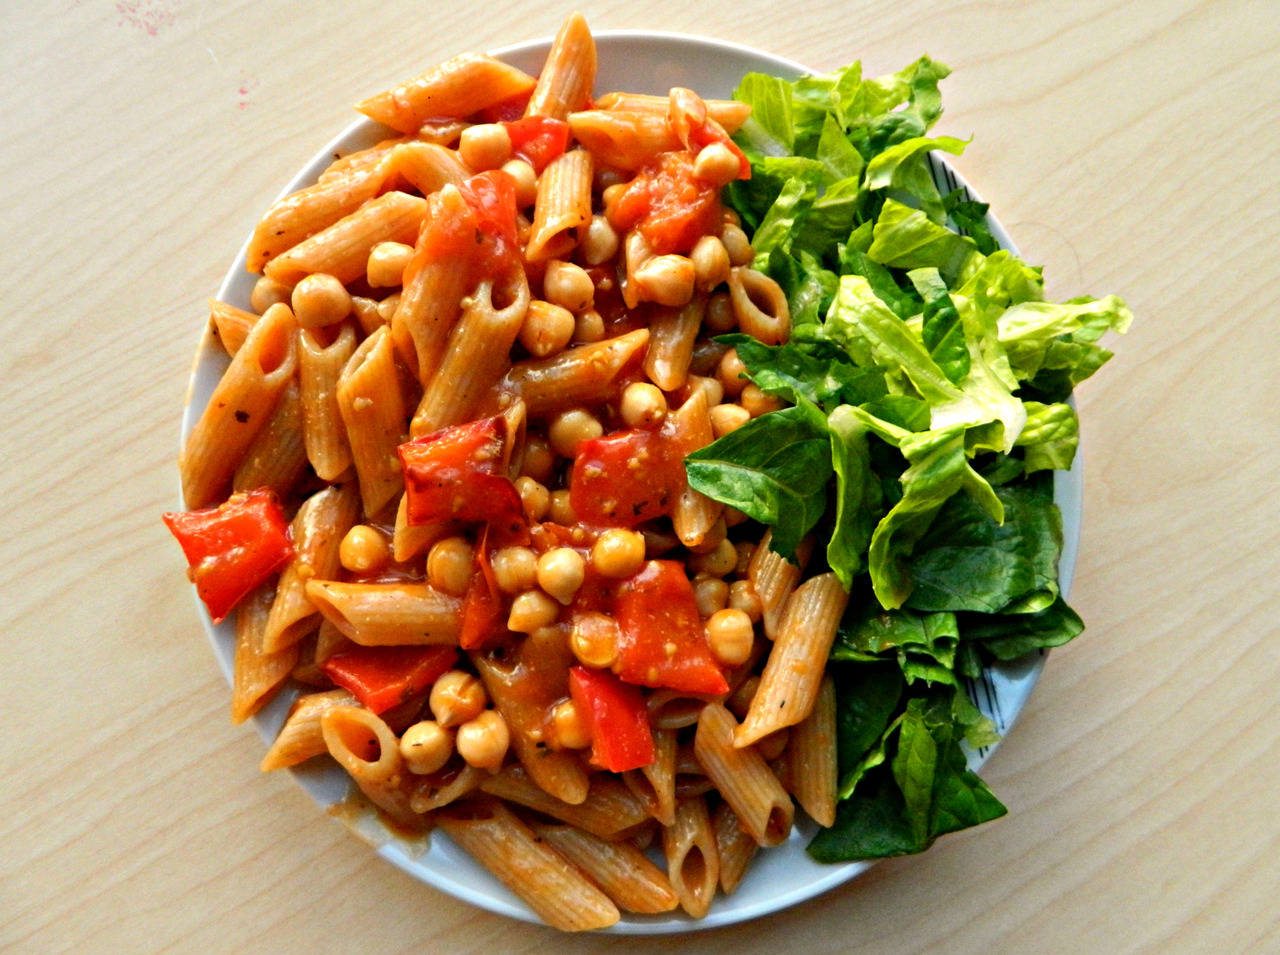 First university meal ever! Wholewheat pasta with roasted cherry tomatoes and red bell pepper (baked in 200C oven with some coconut oil for 1/2 hr), dried basil, tomato purée, black pepper and chickpeas with romaine lettuce.